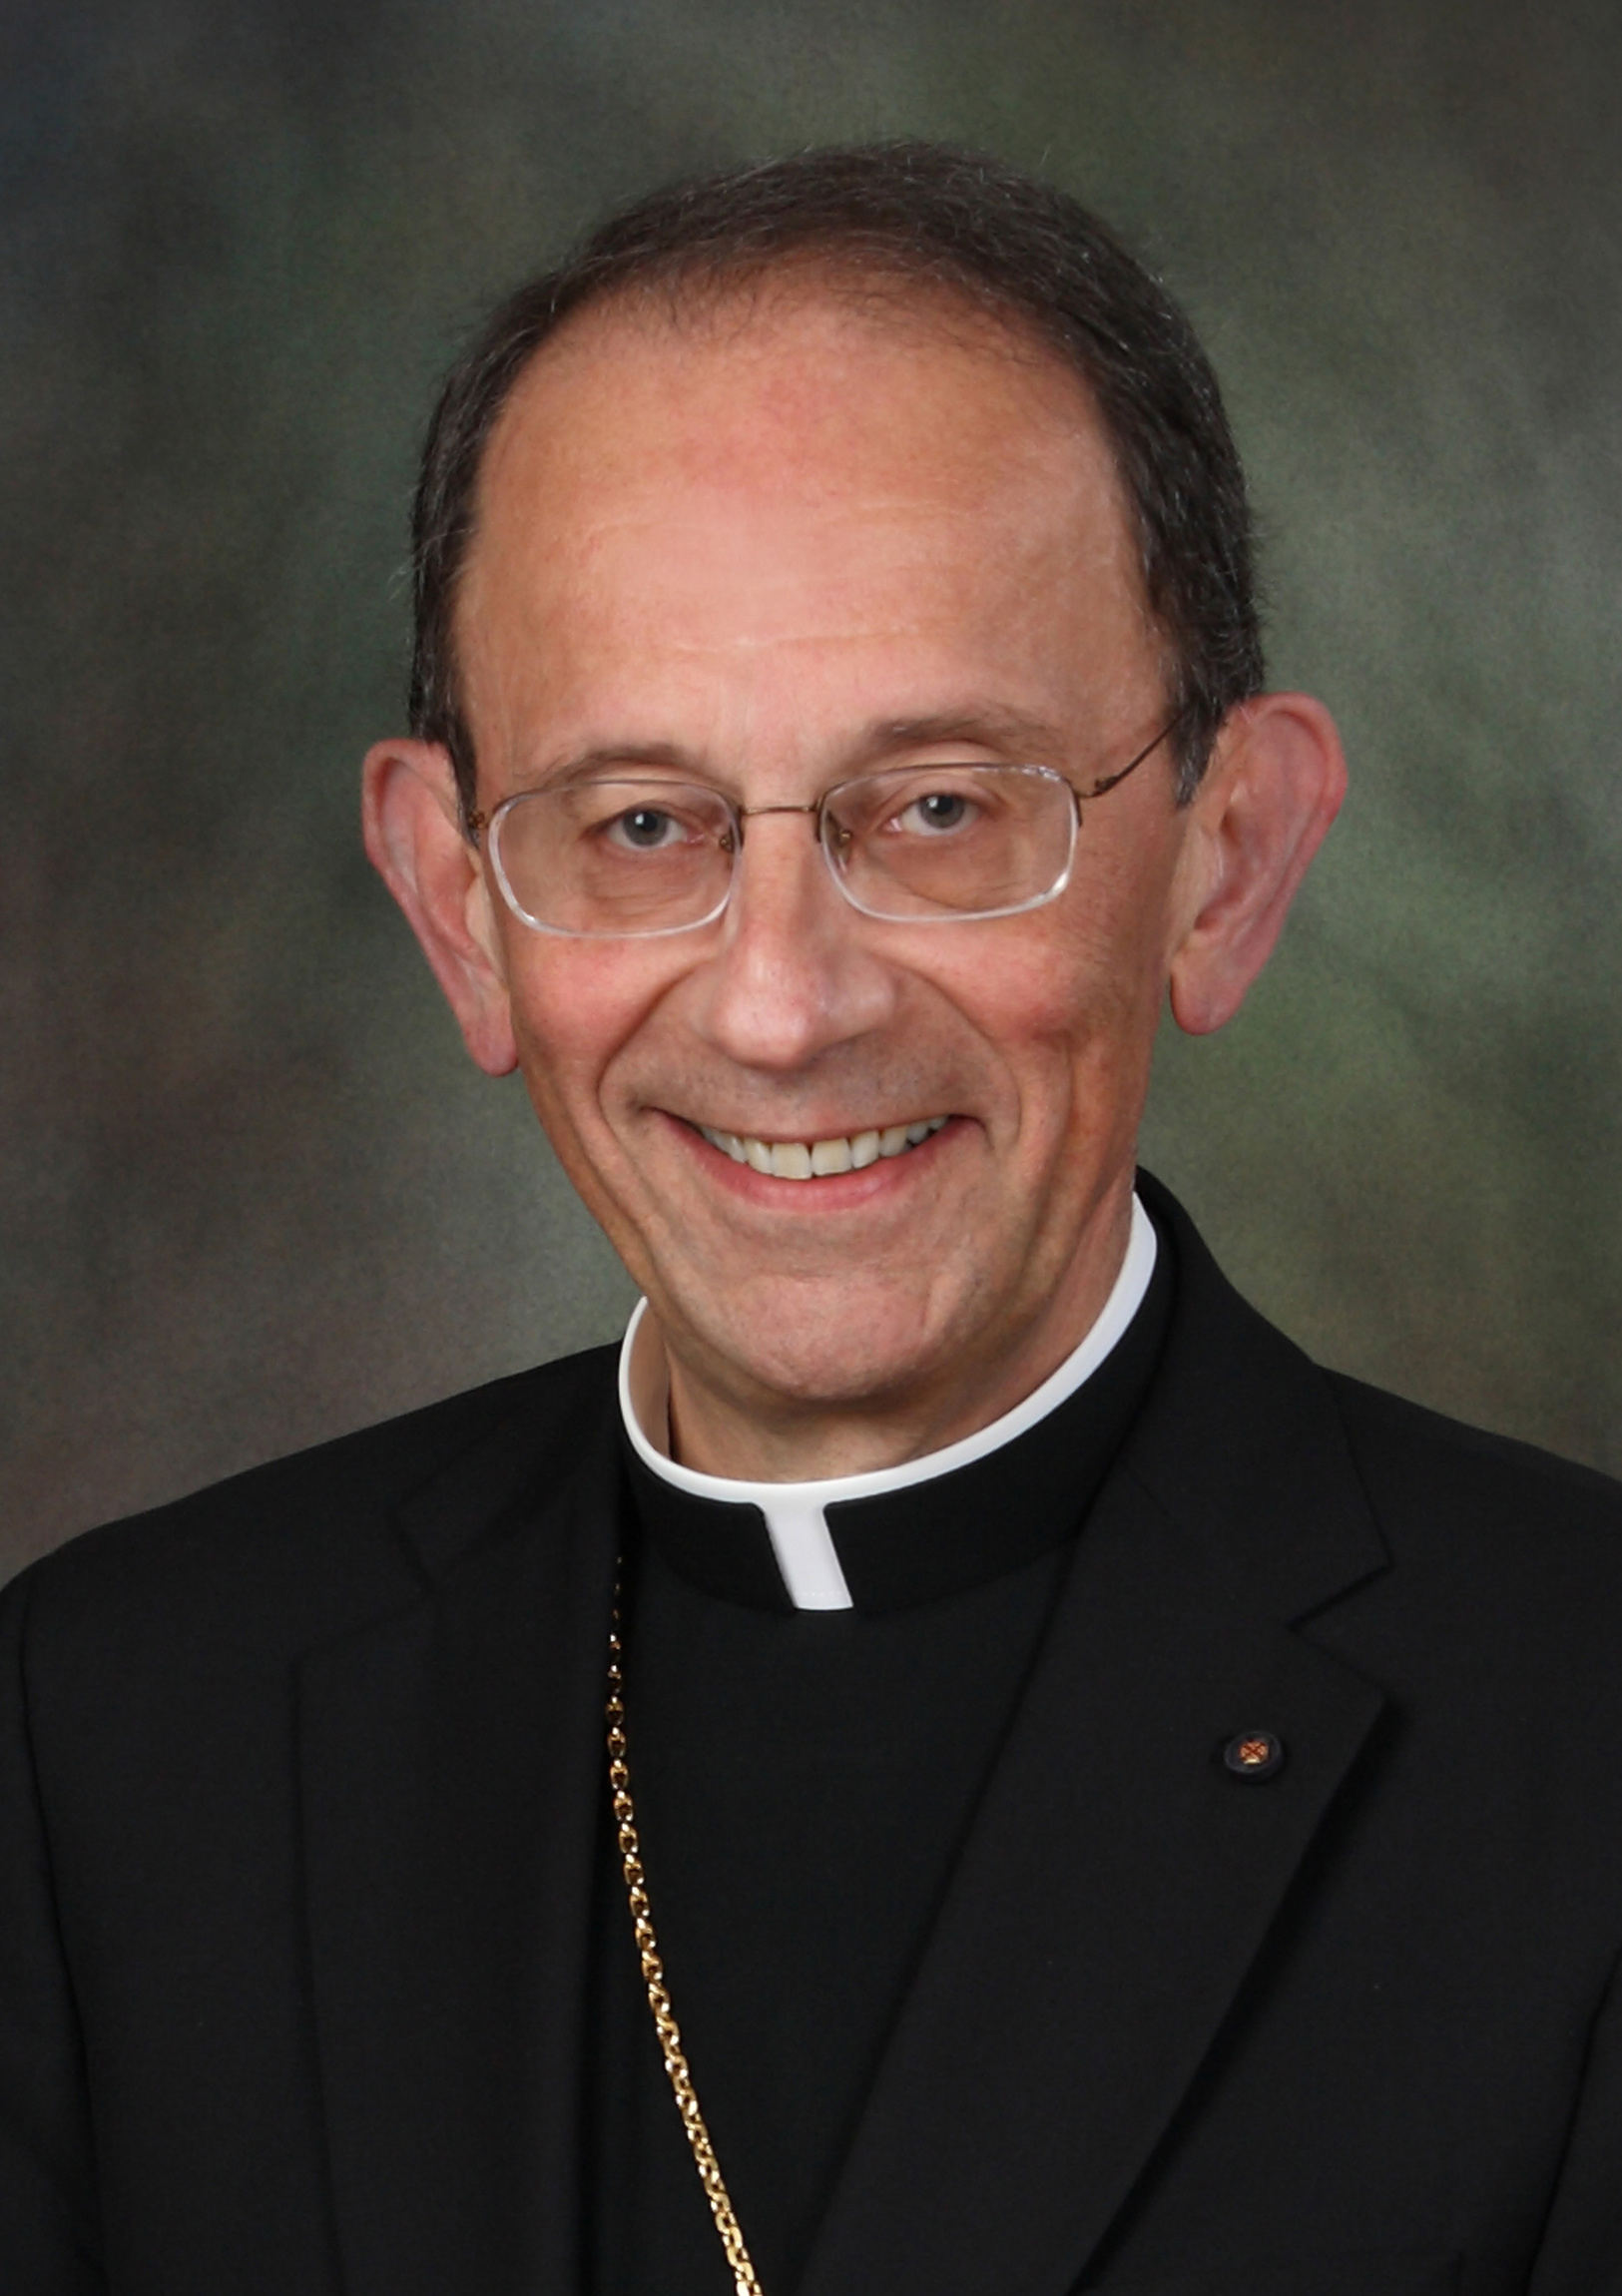 Erie diocese